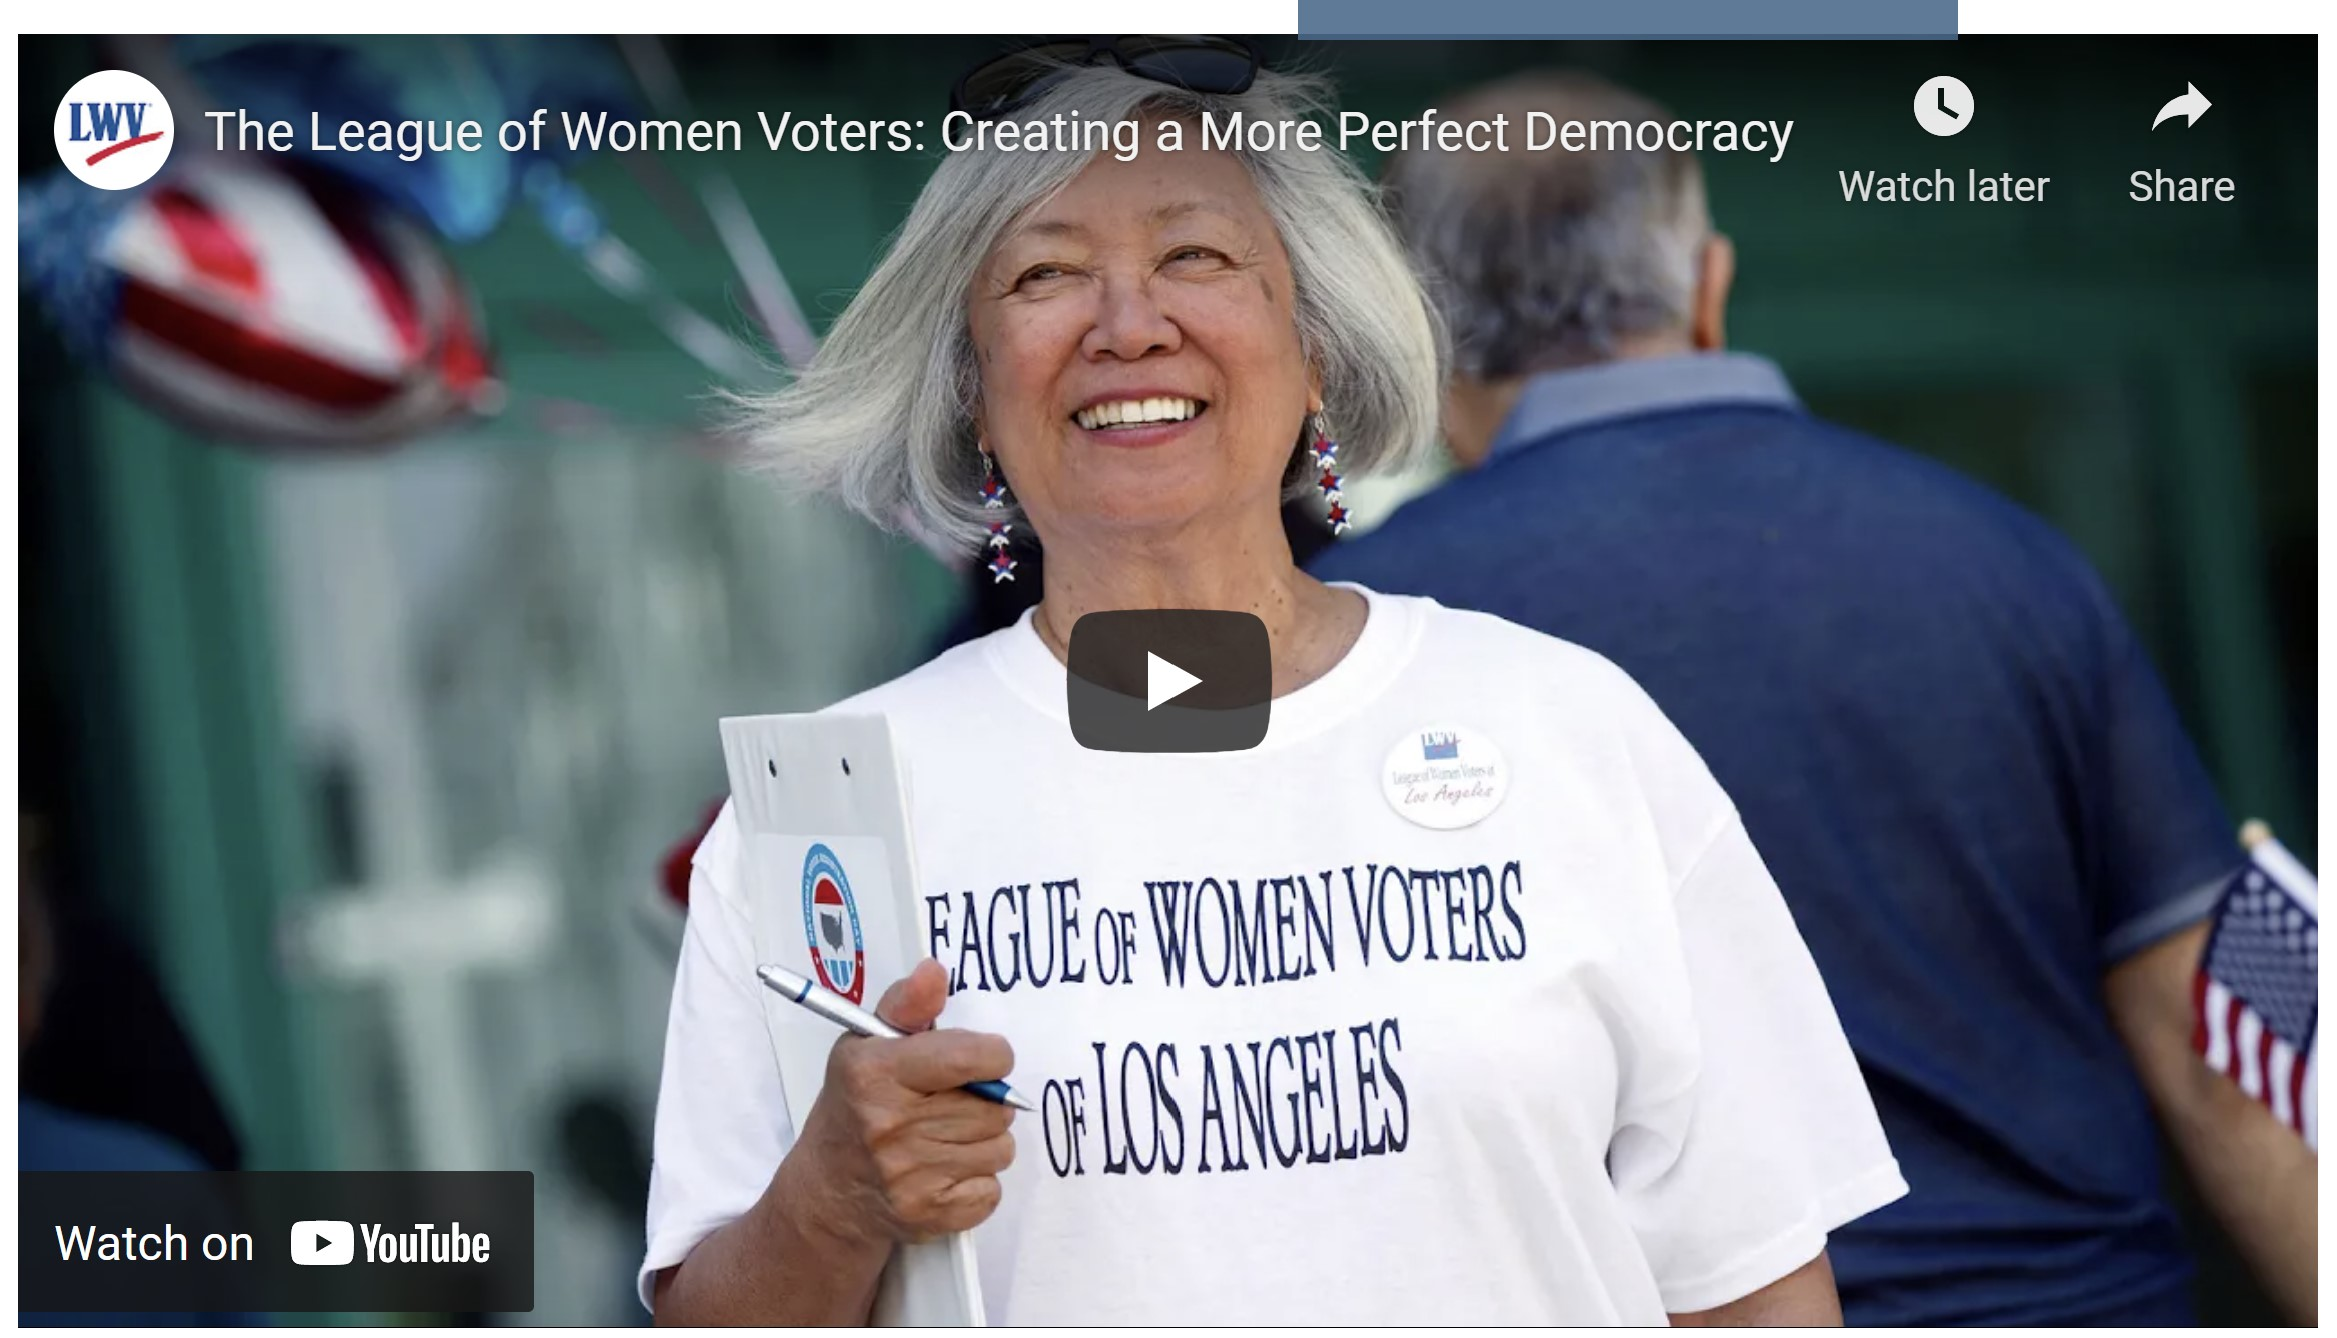 Creating a More Perfect Democracy